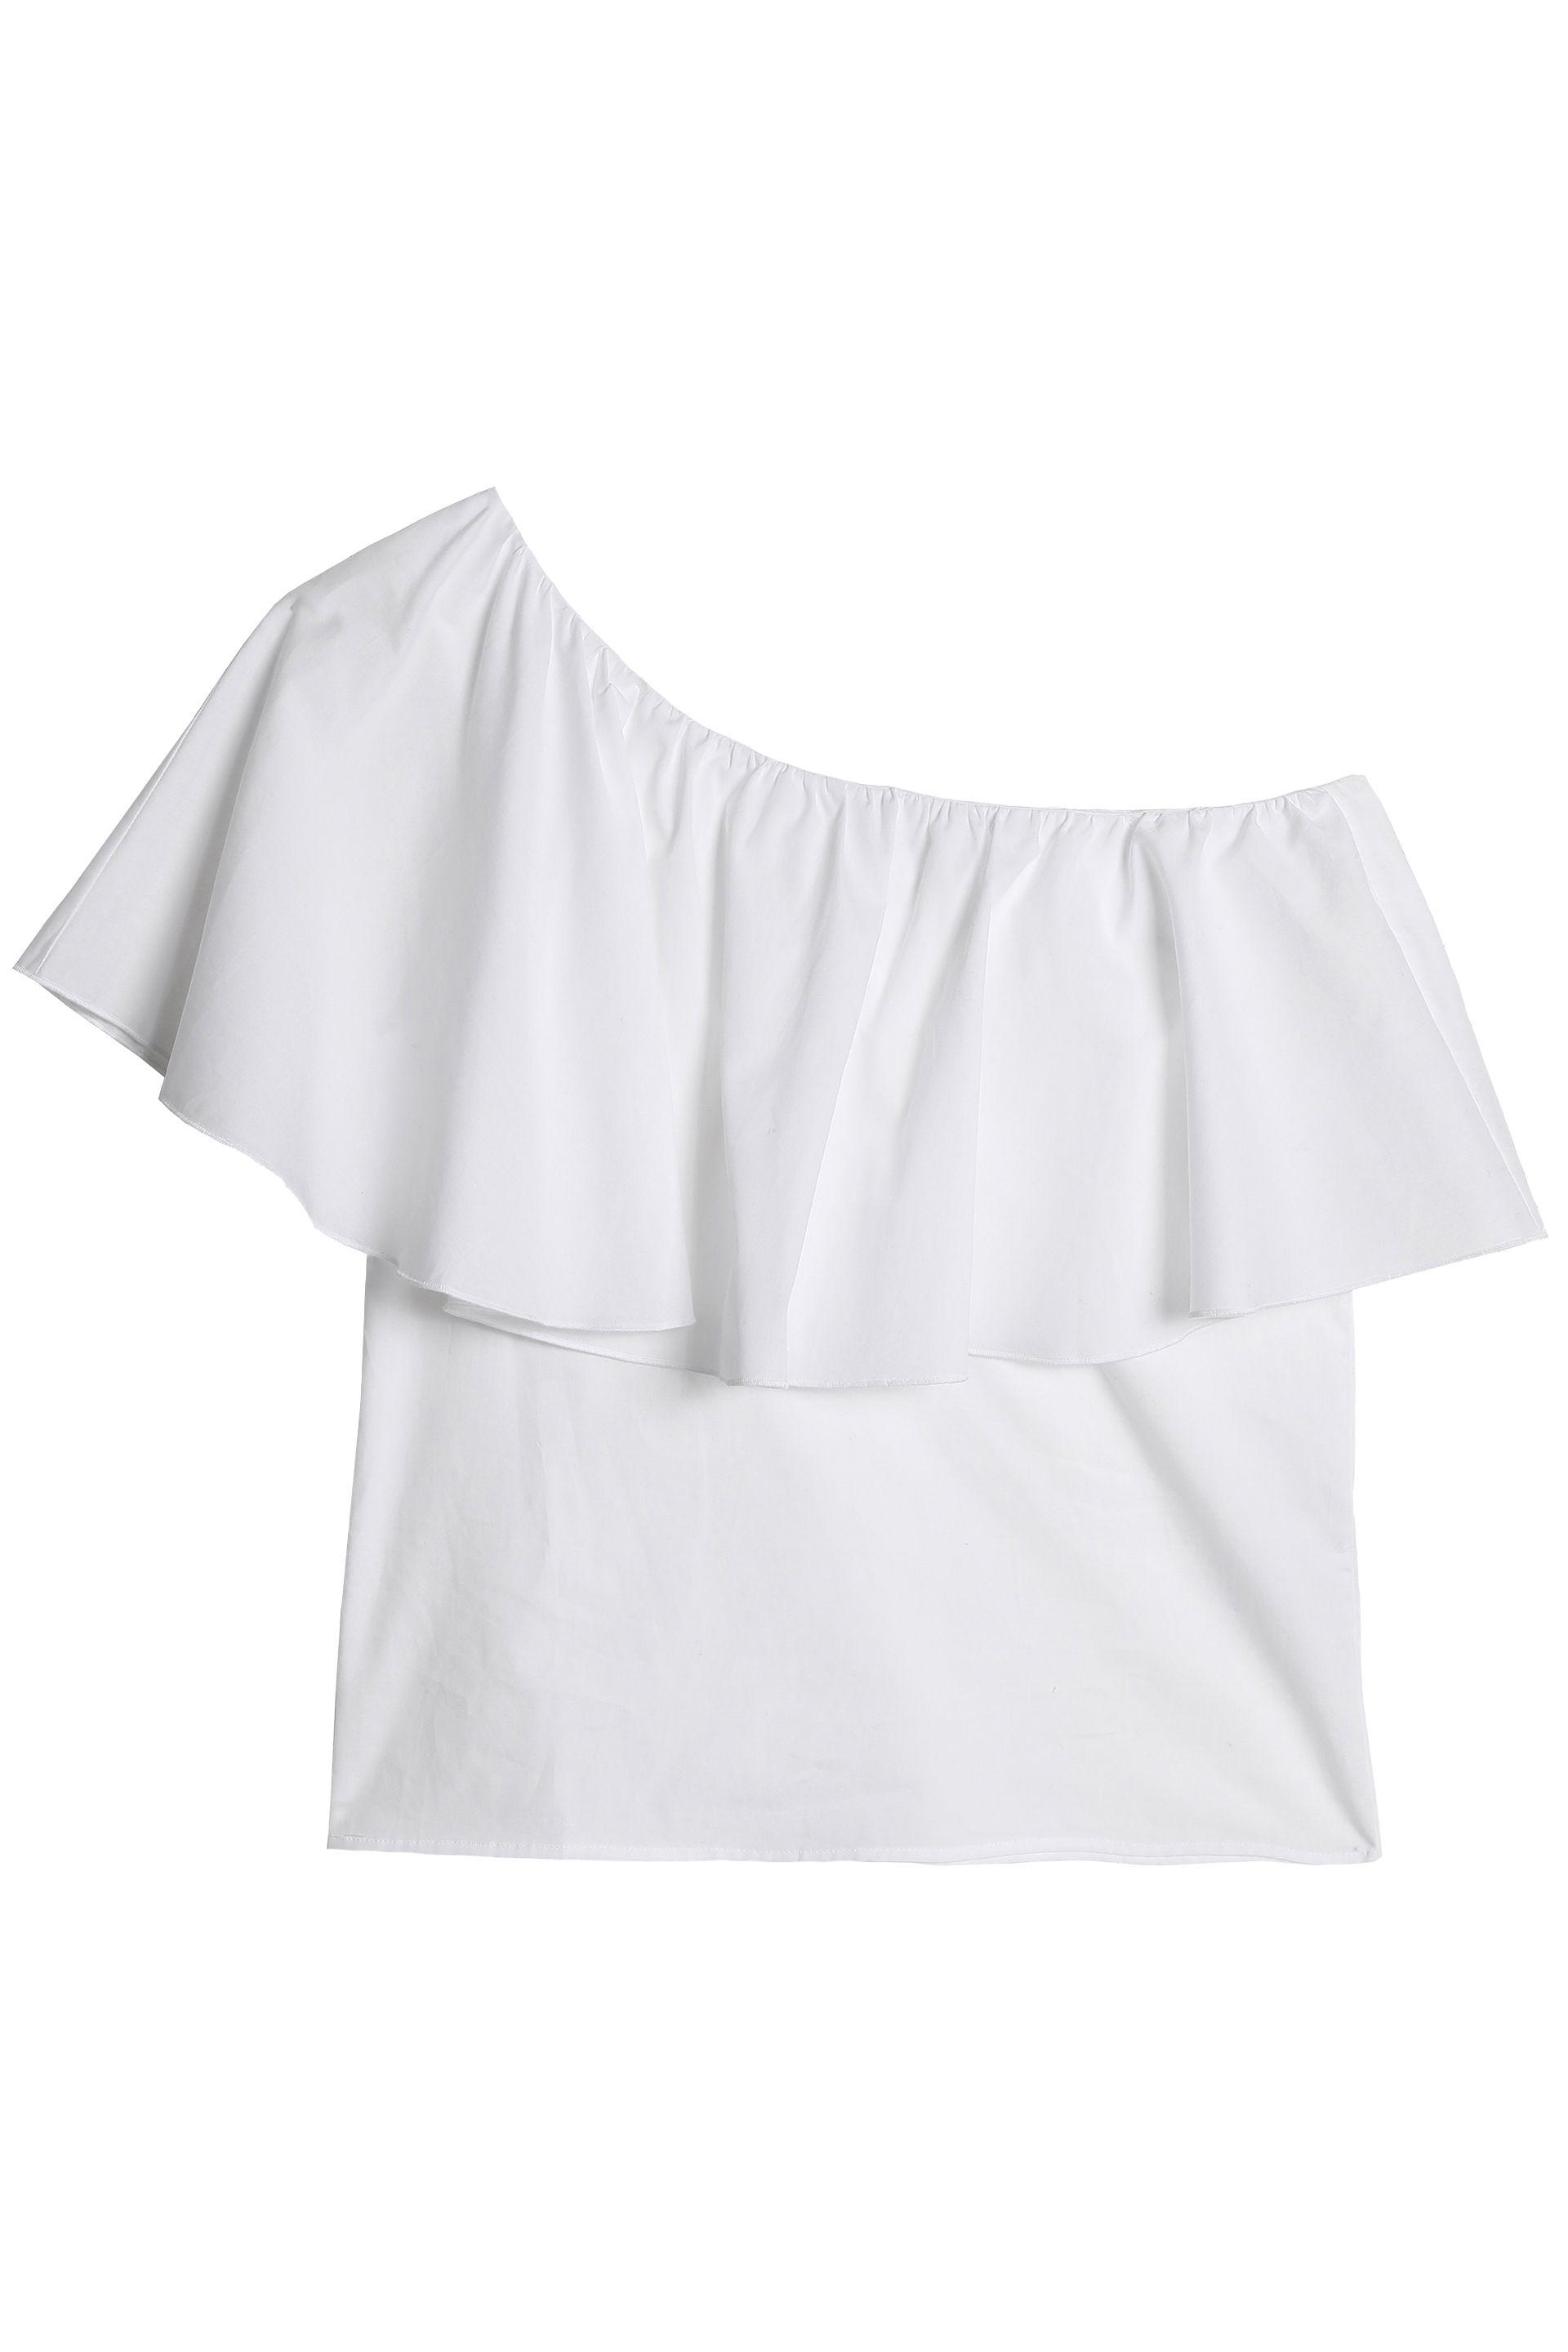 Iris & Ink Woman Callin Pleated Voile-trimmed Cotton-blend Poplin Top White Size 10 IRIS & INK Buy Cheap Low Shipping Fee Outlet Looking For Clearance Pay With Visa X4ZAQ